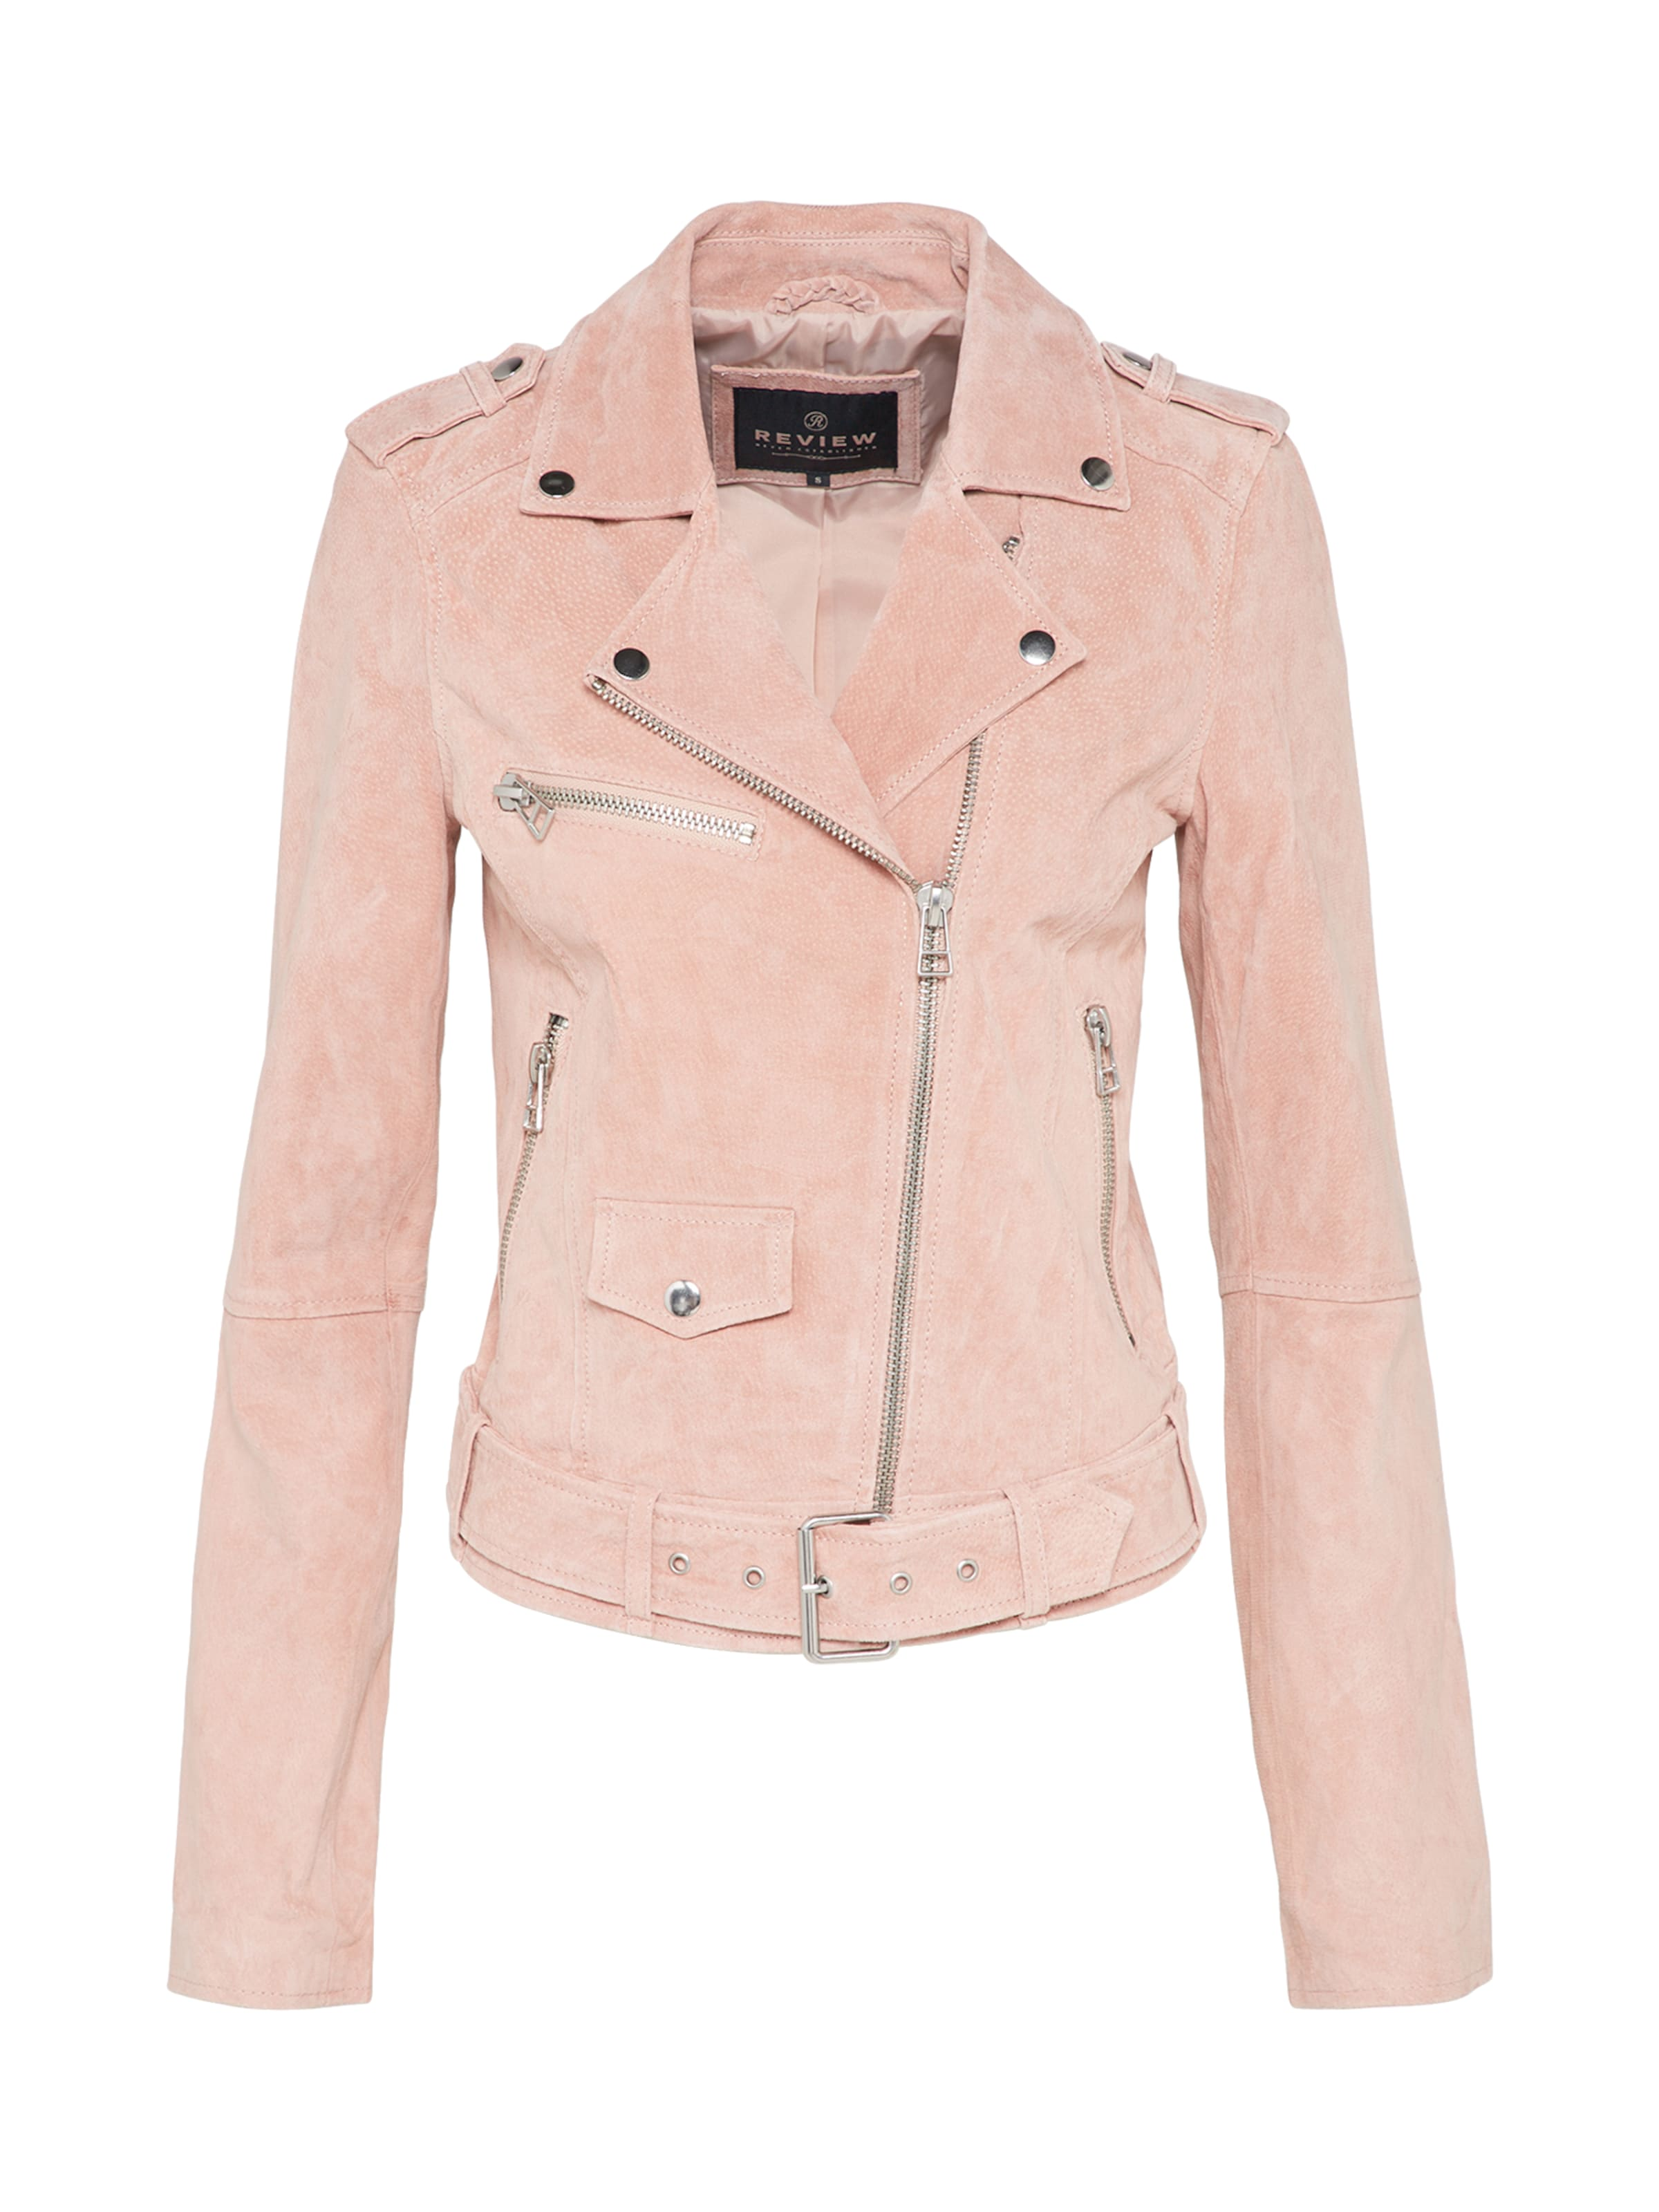 'belted Camel Mi In Velours' ReviewVeste saison QrxsdCth